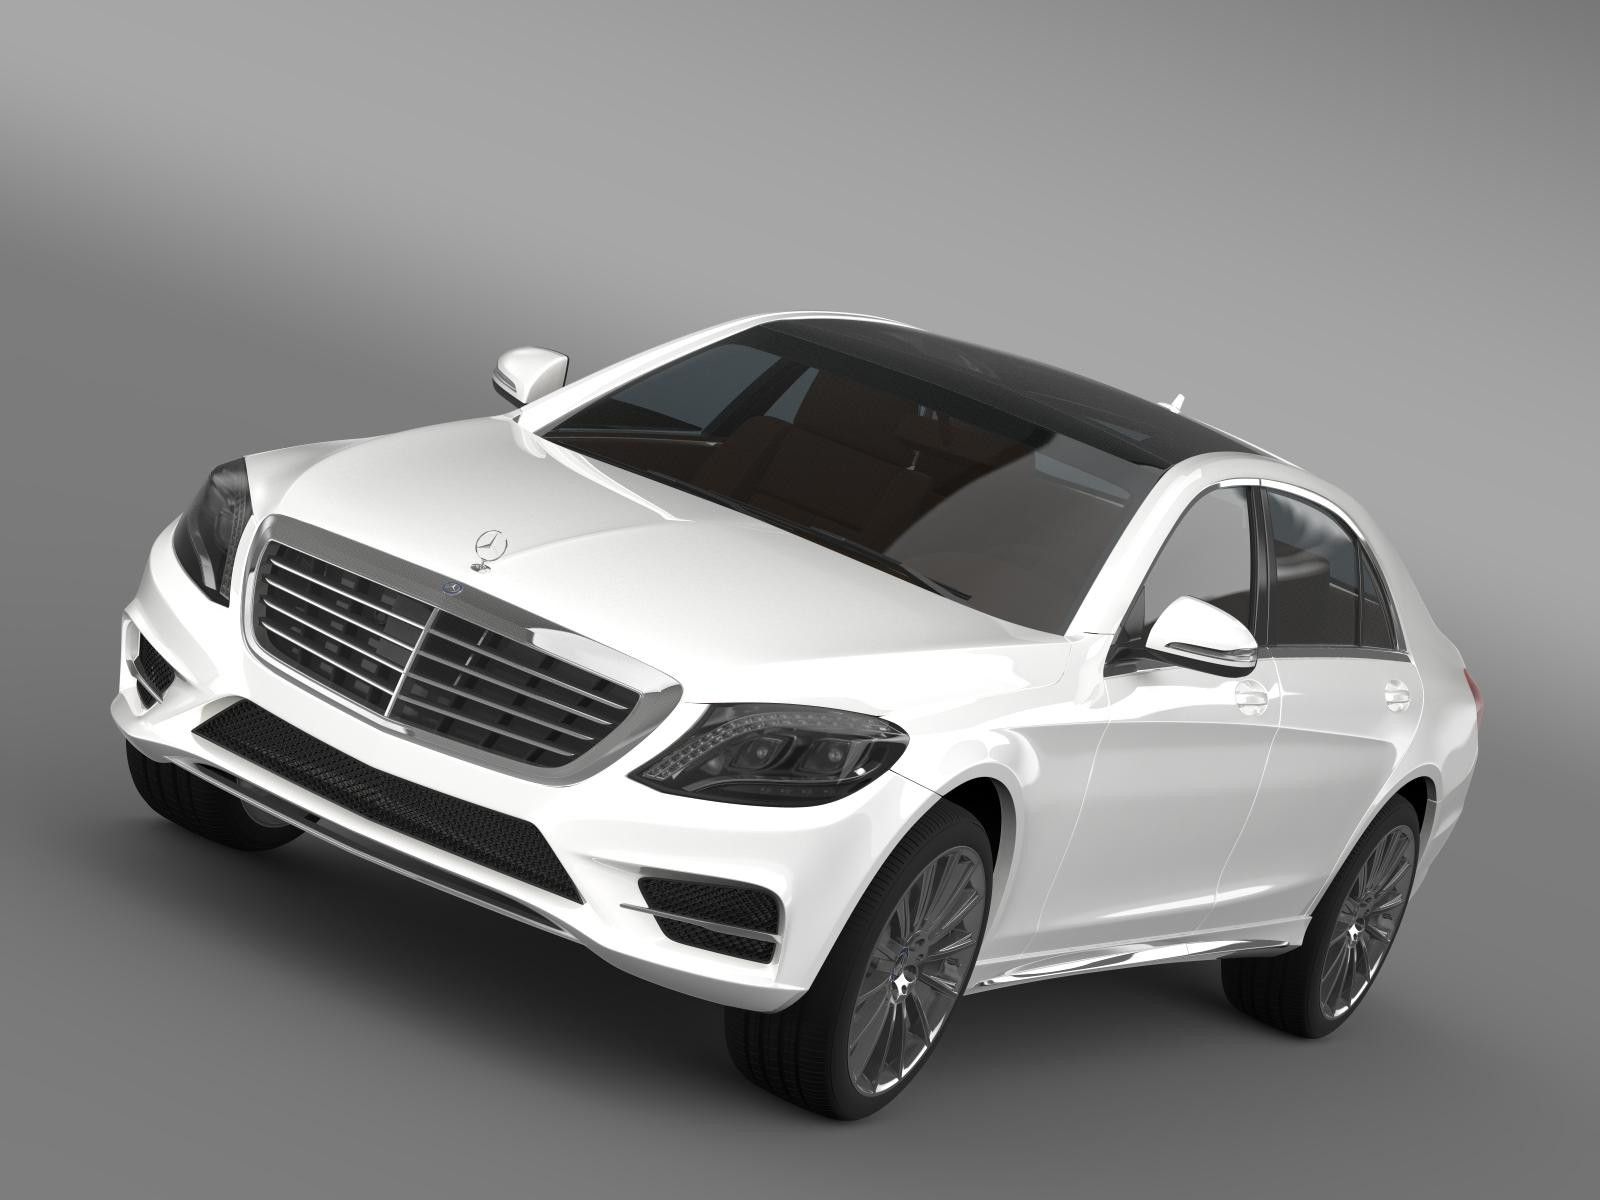 Amg mercedes benz s 350 bluetec w222 2013 3d model buy for Mercedes benz s 350